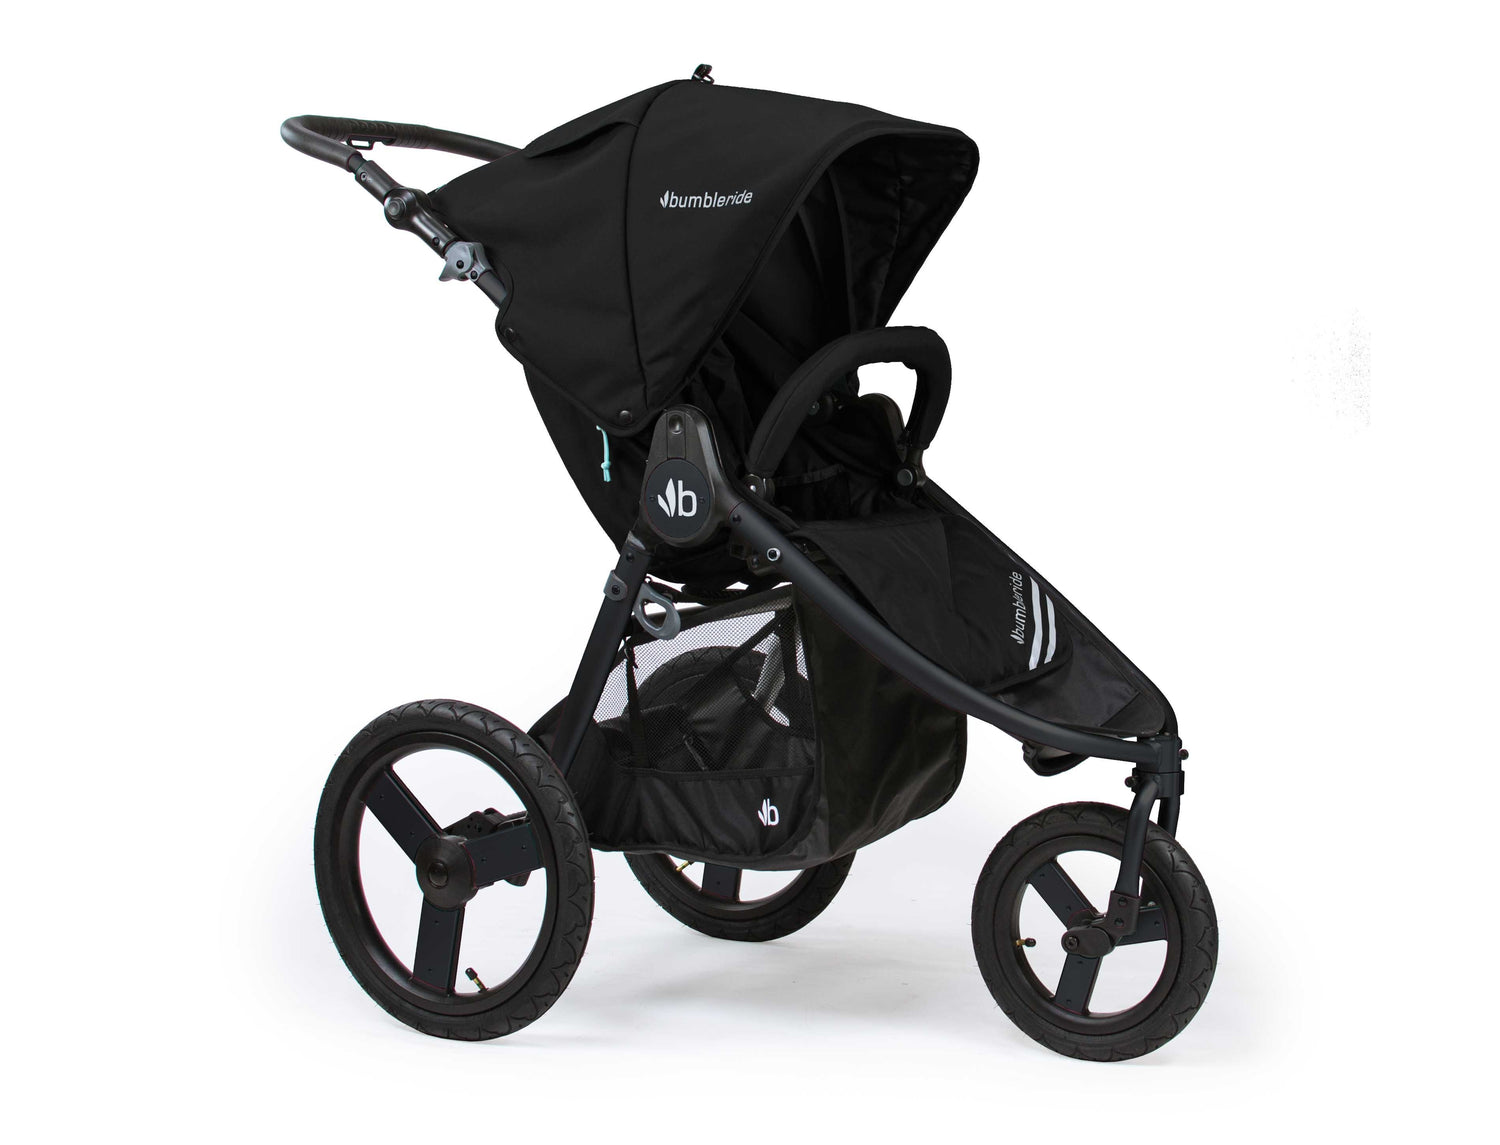 2018 Bumbleride Speed Jogging Stroller - Matte Black